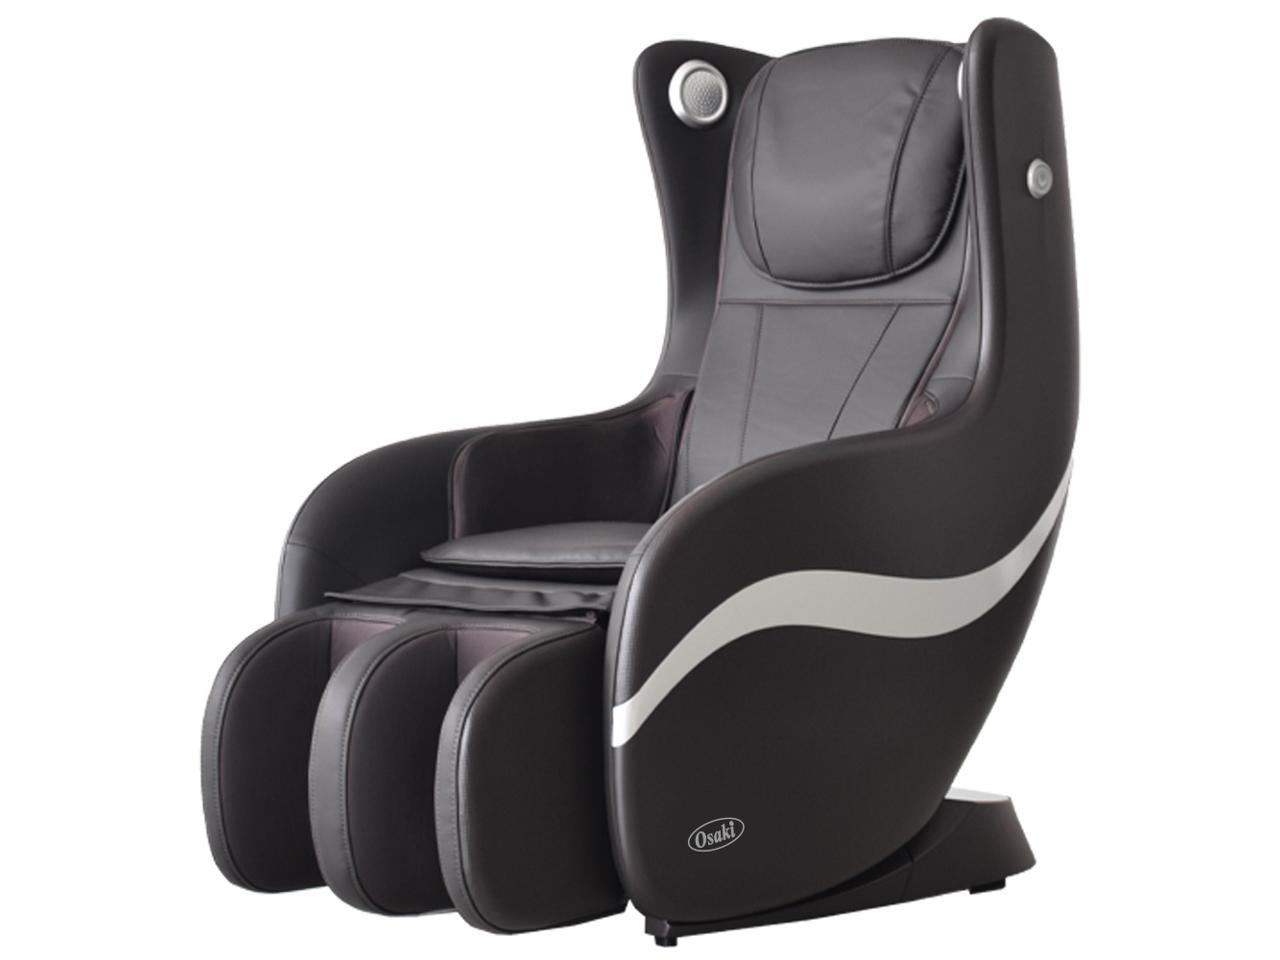 Osaki OS-Bello L-Track Massage Chair with 2 Stage Zero-Gravity Recline, Airbag Compression Massage, Mid-Size